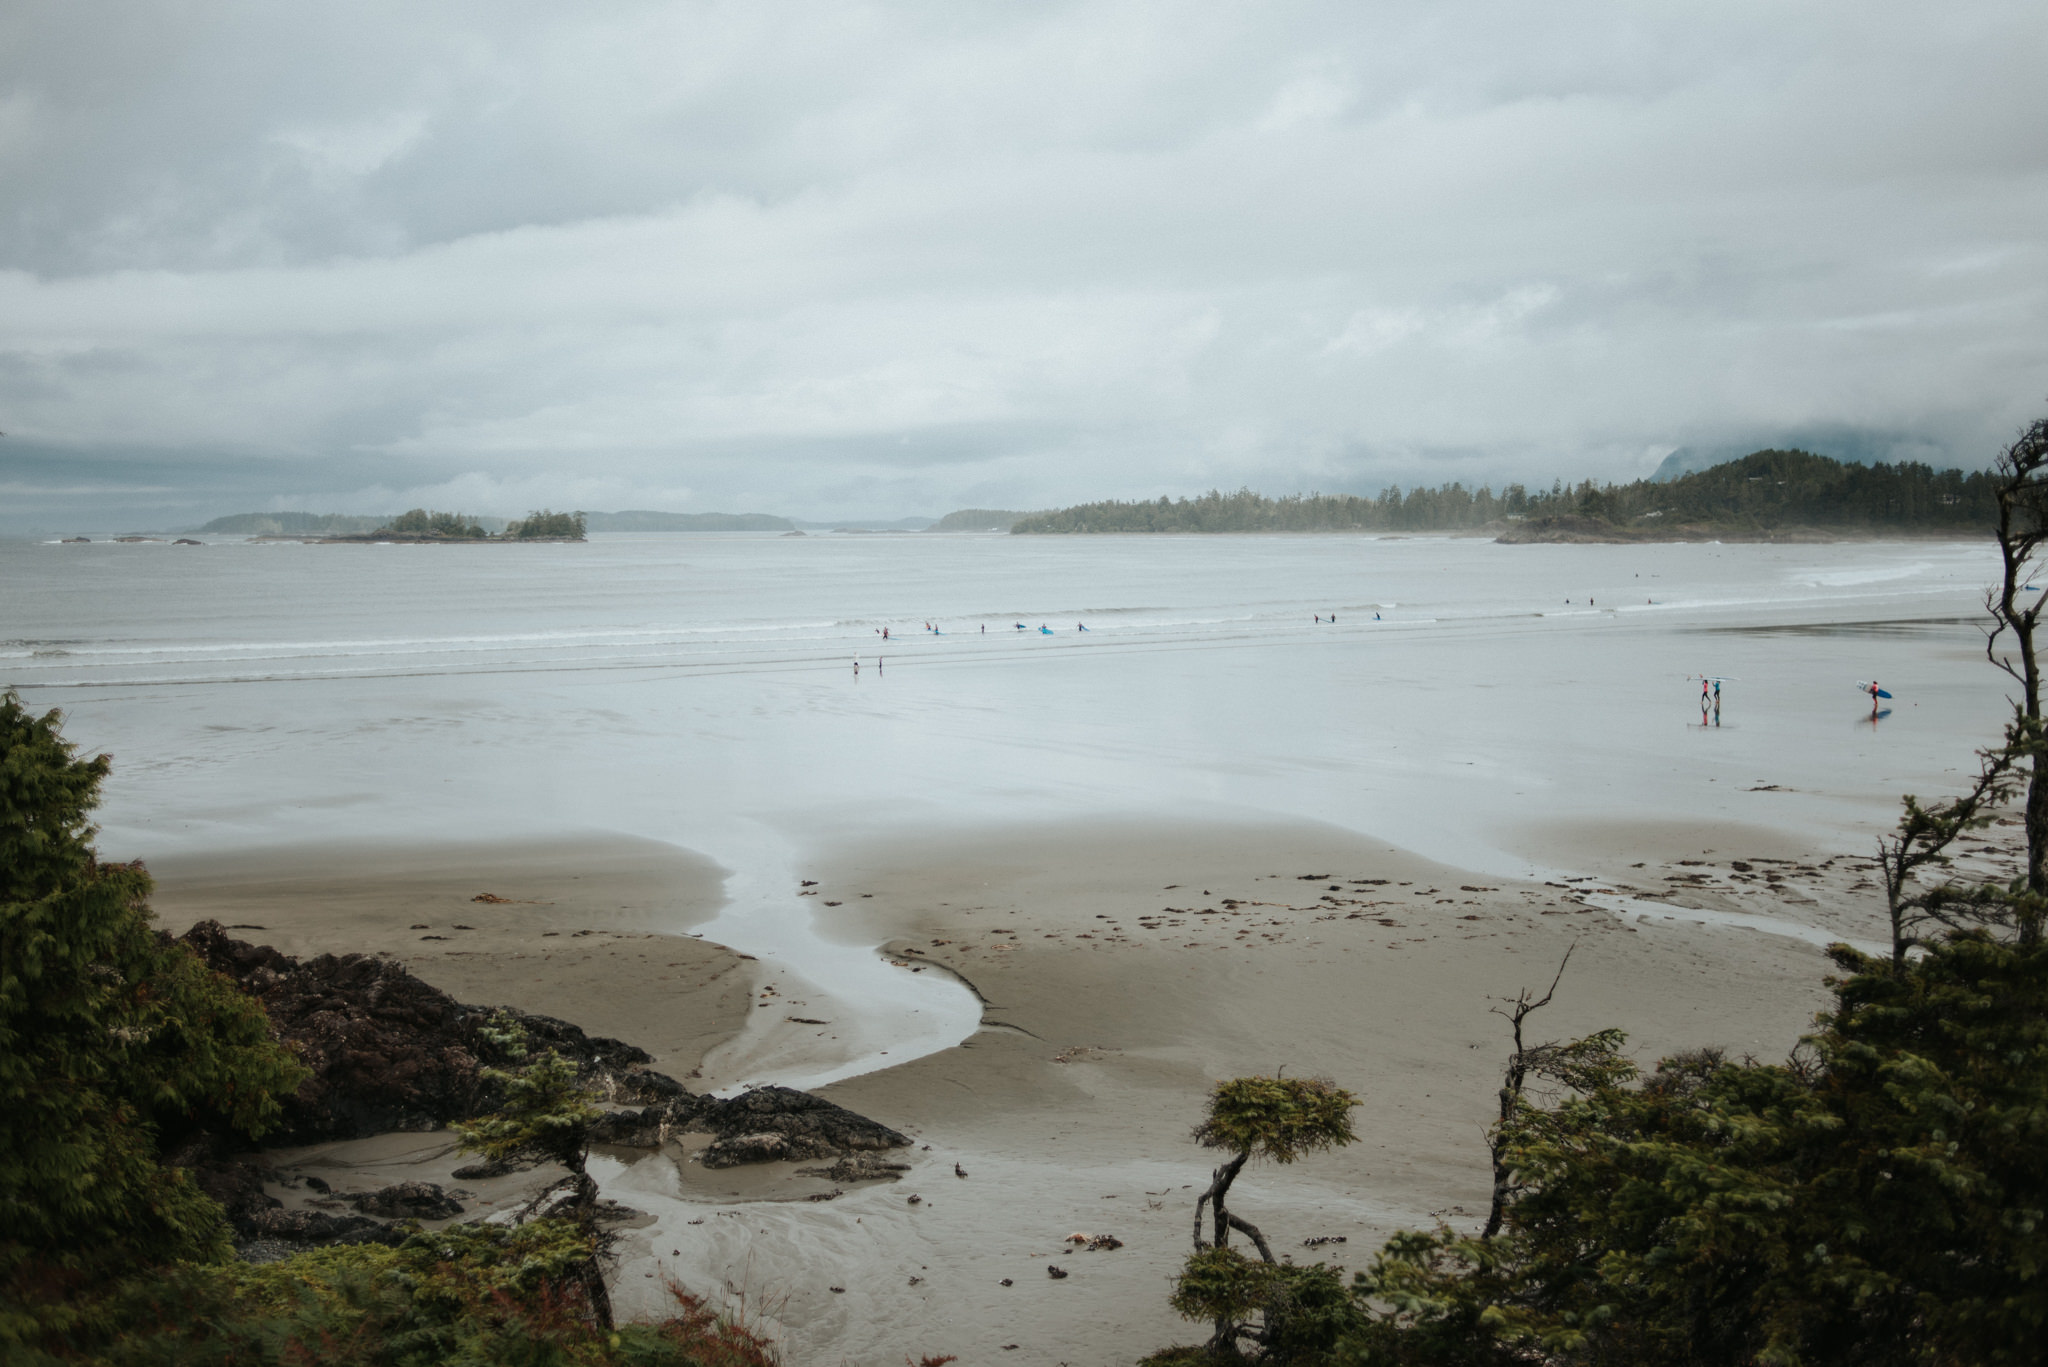 Foggy morning at Cox Bay in Tofino